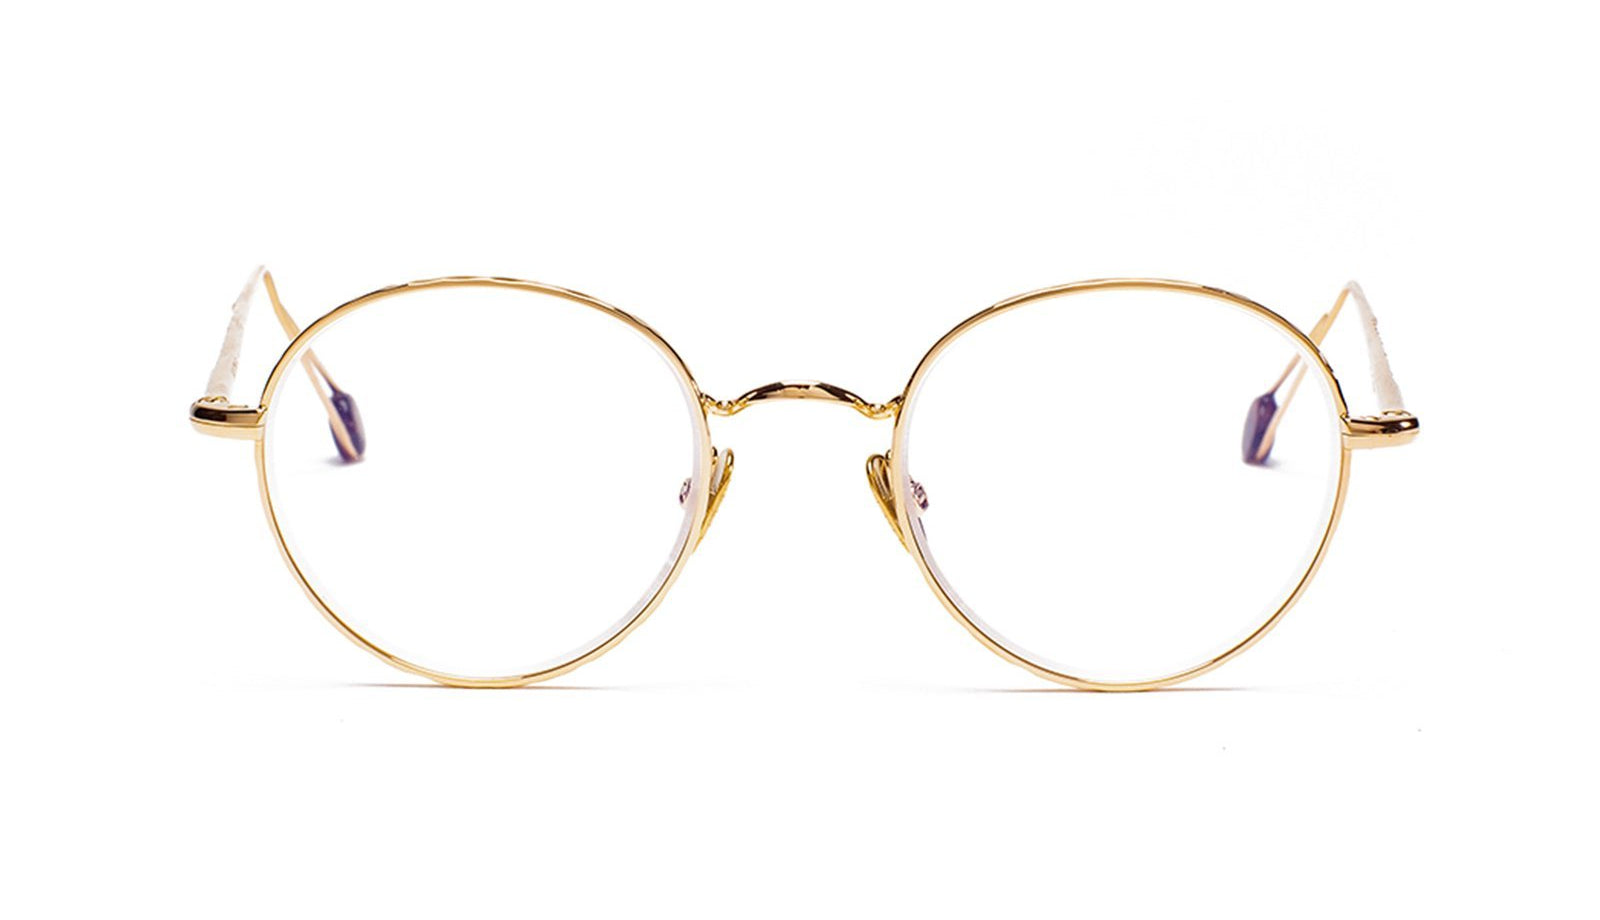 Ahlem Eyewear Beaubourg Champagne Optical